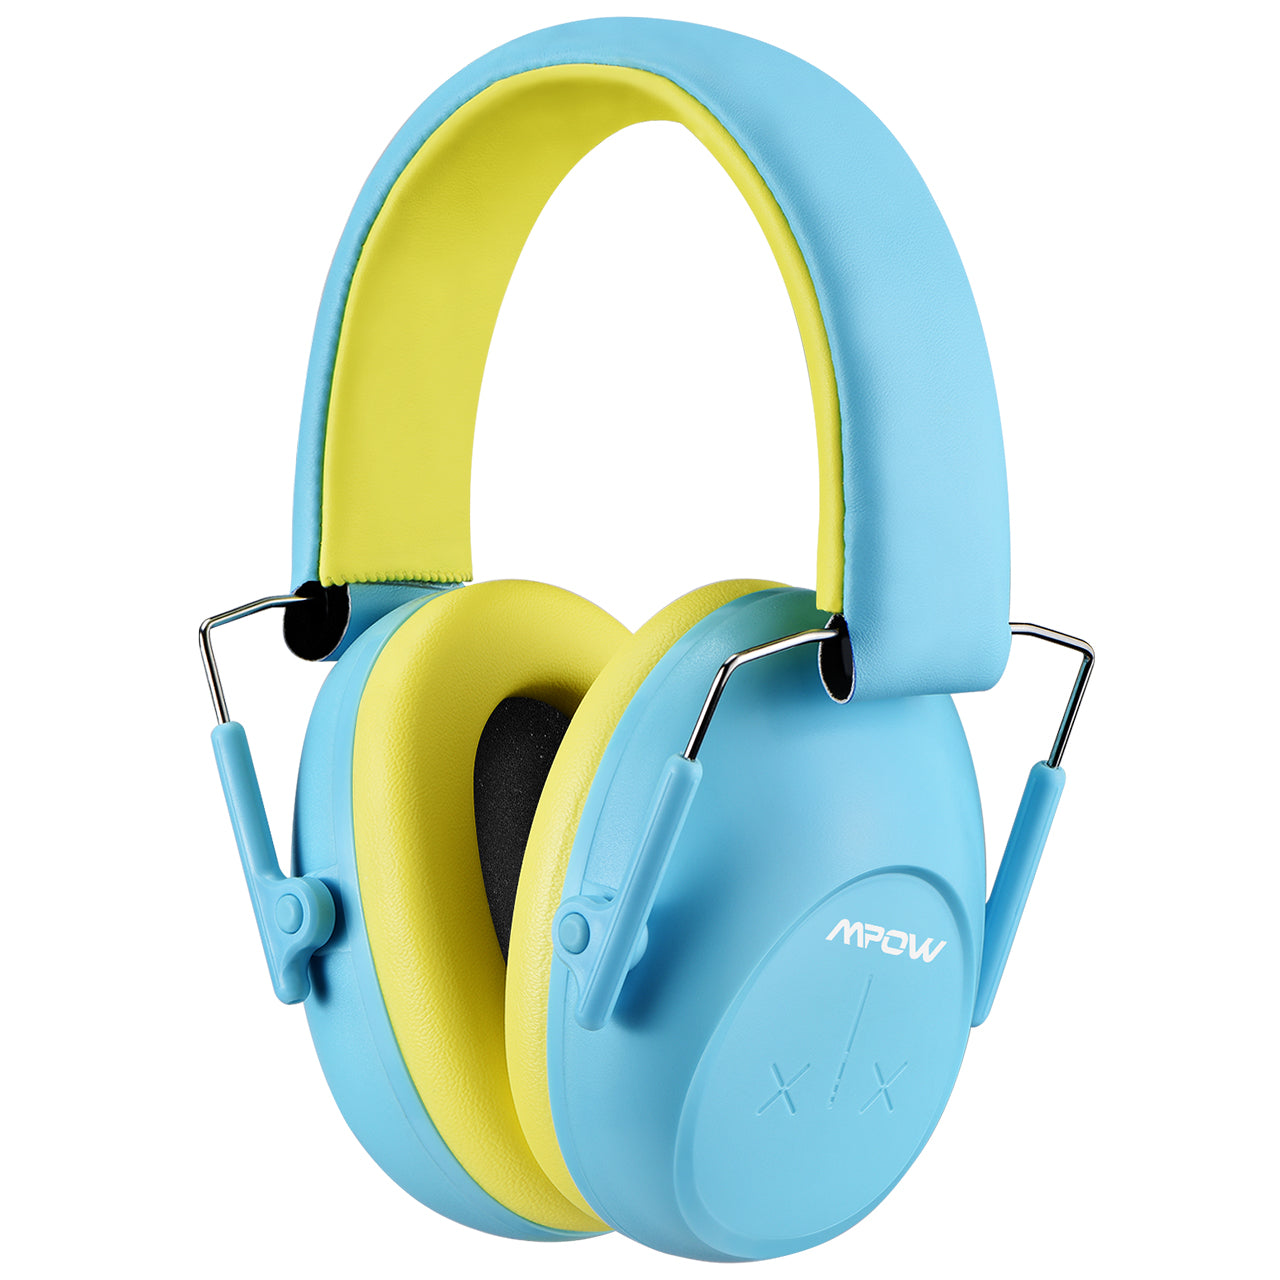 MPOW HP132A Kids Ear Protection Safety Ear Muffs, Adjustable, 26dB NRR